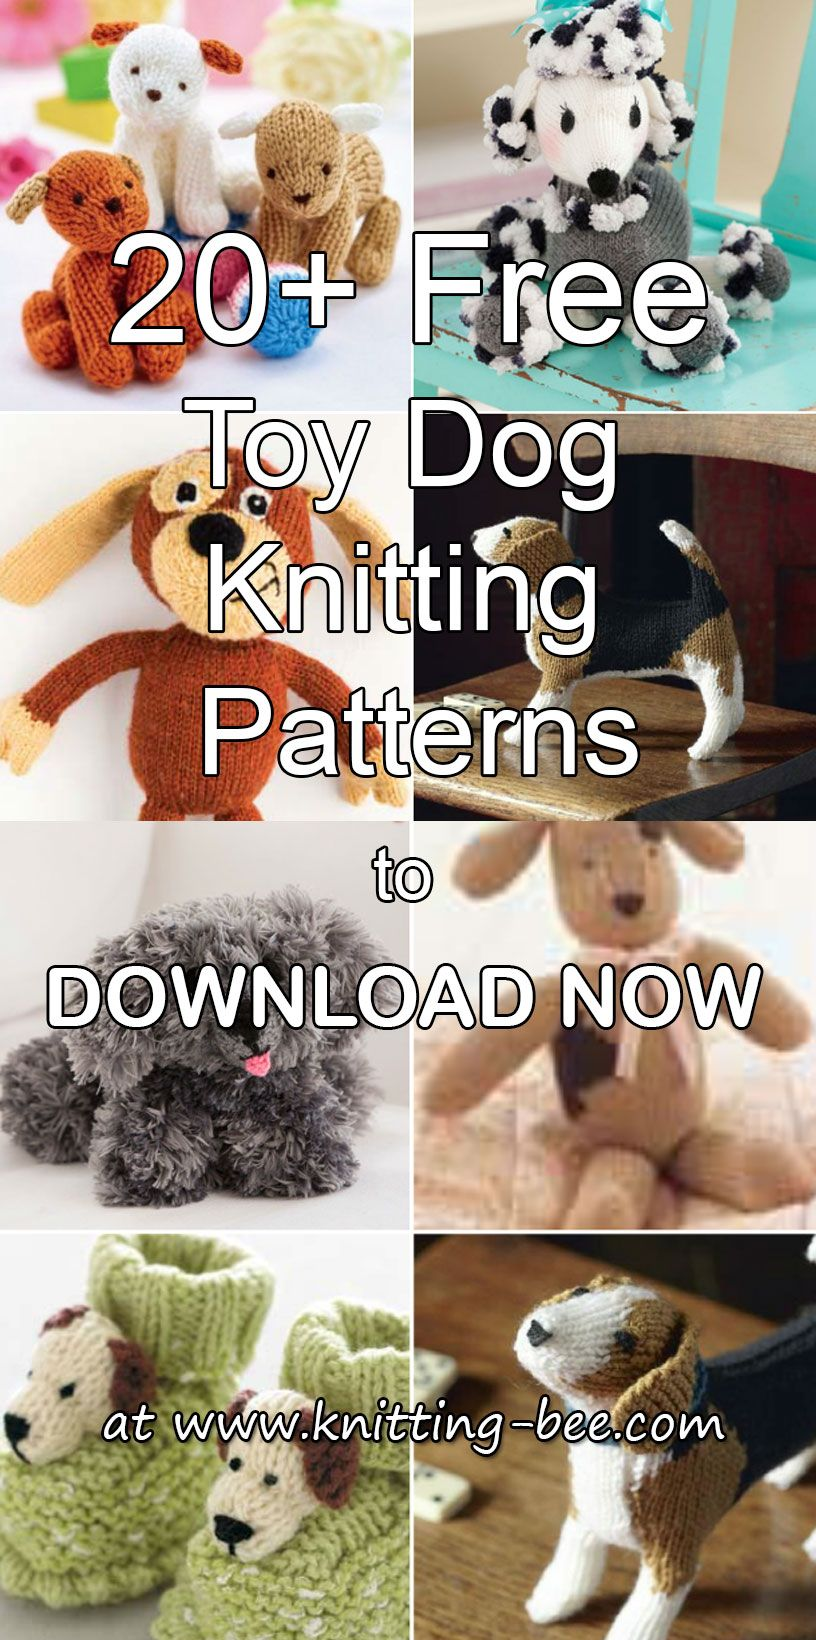 28bd5c4570185b More than 20 Free Toy Dog Knitting Patterns to Download Now http   www